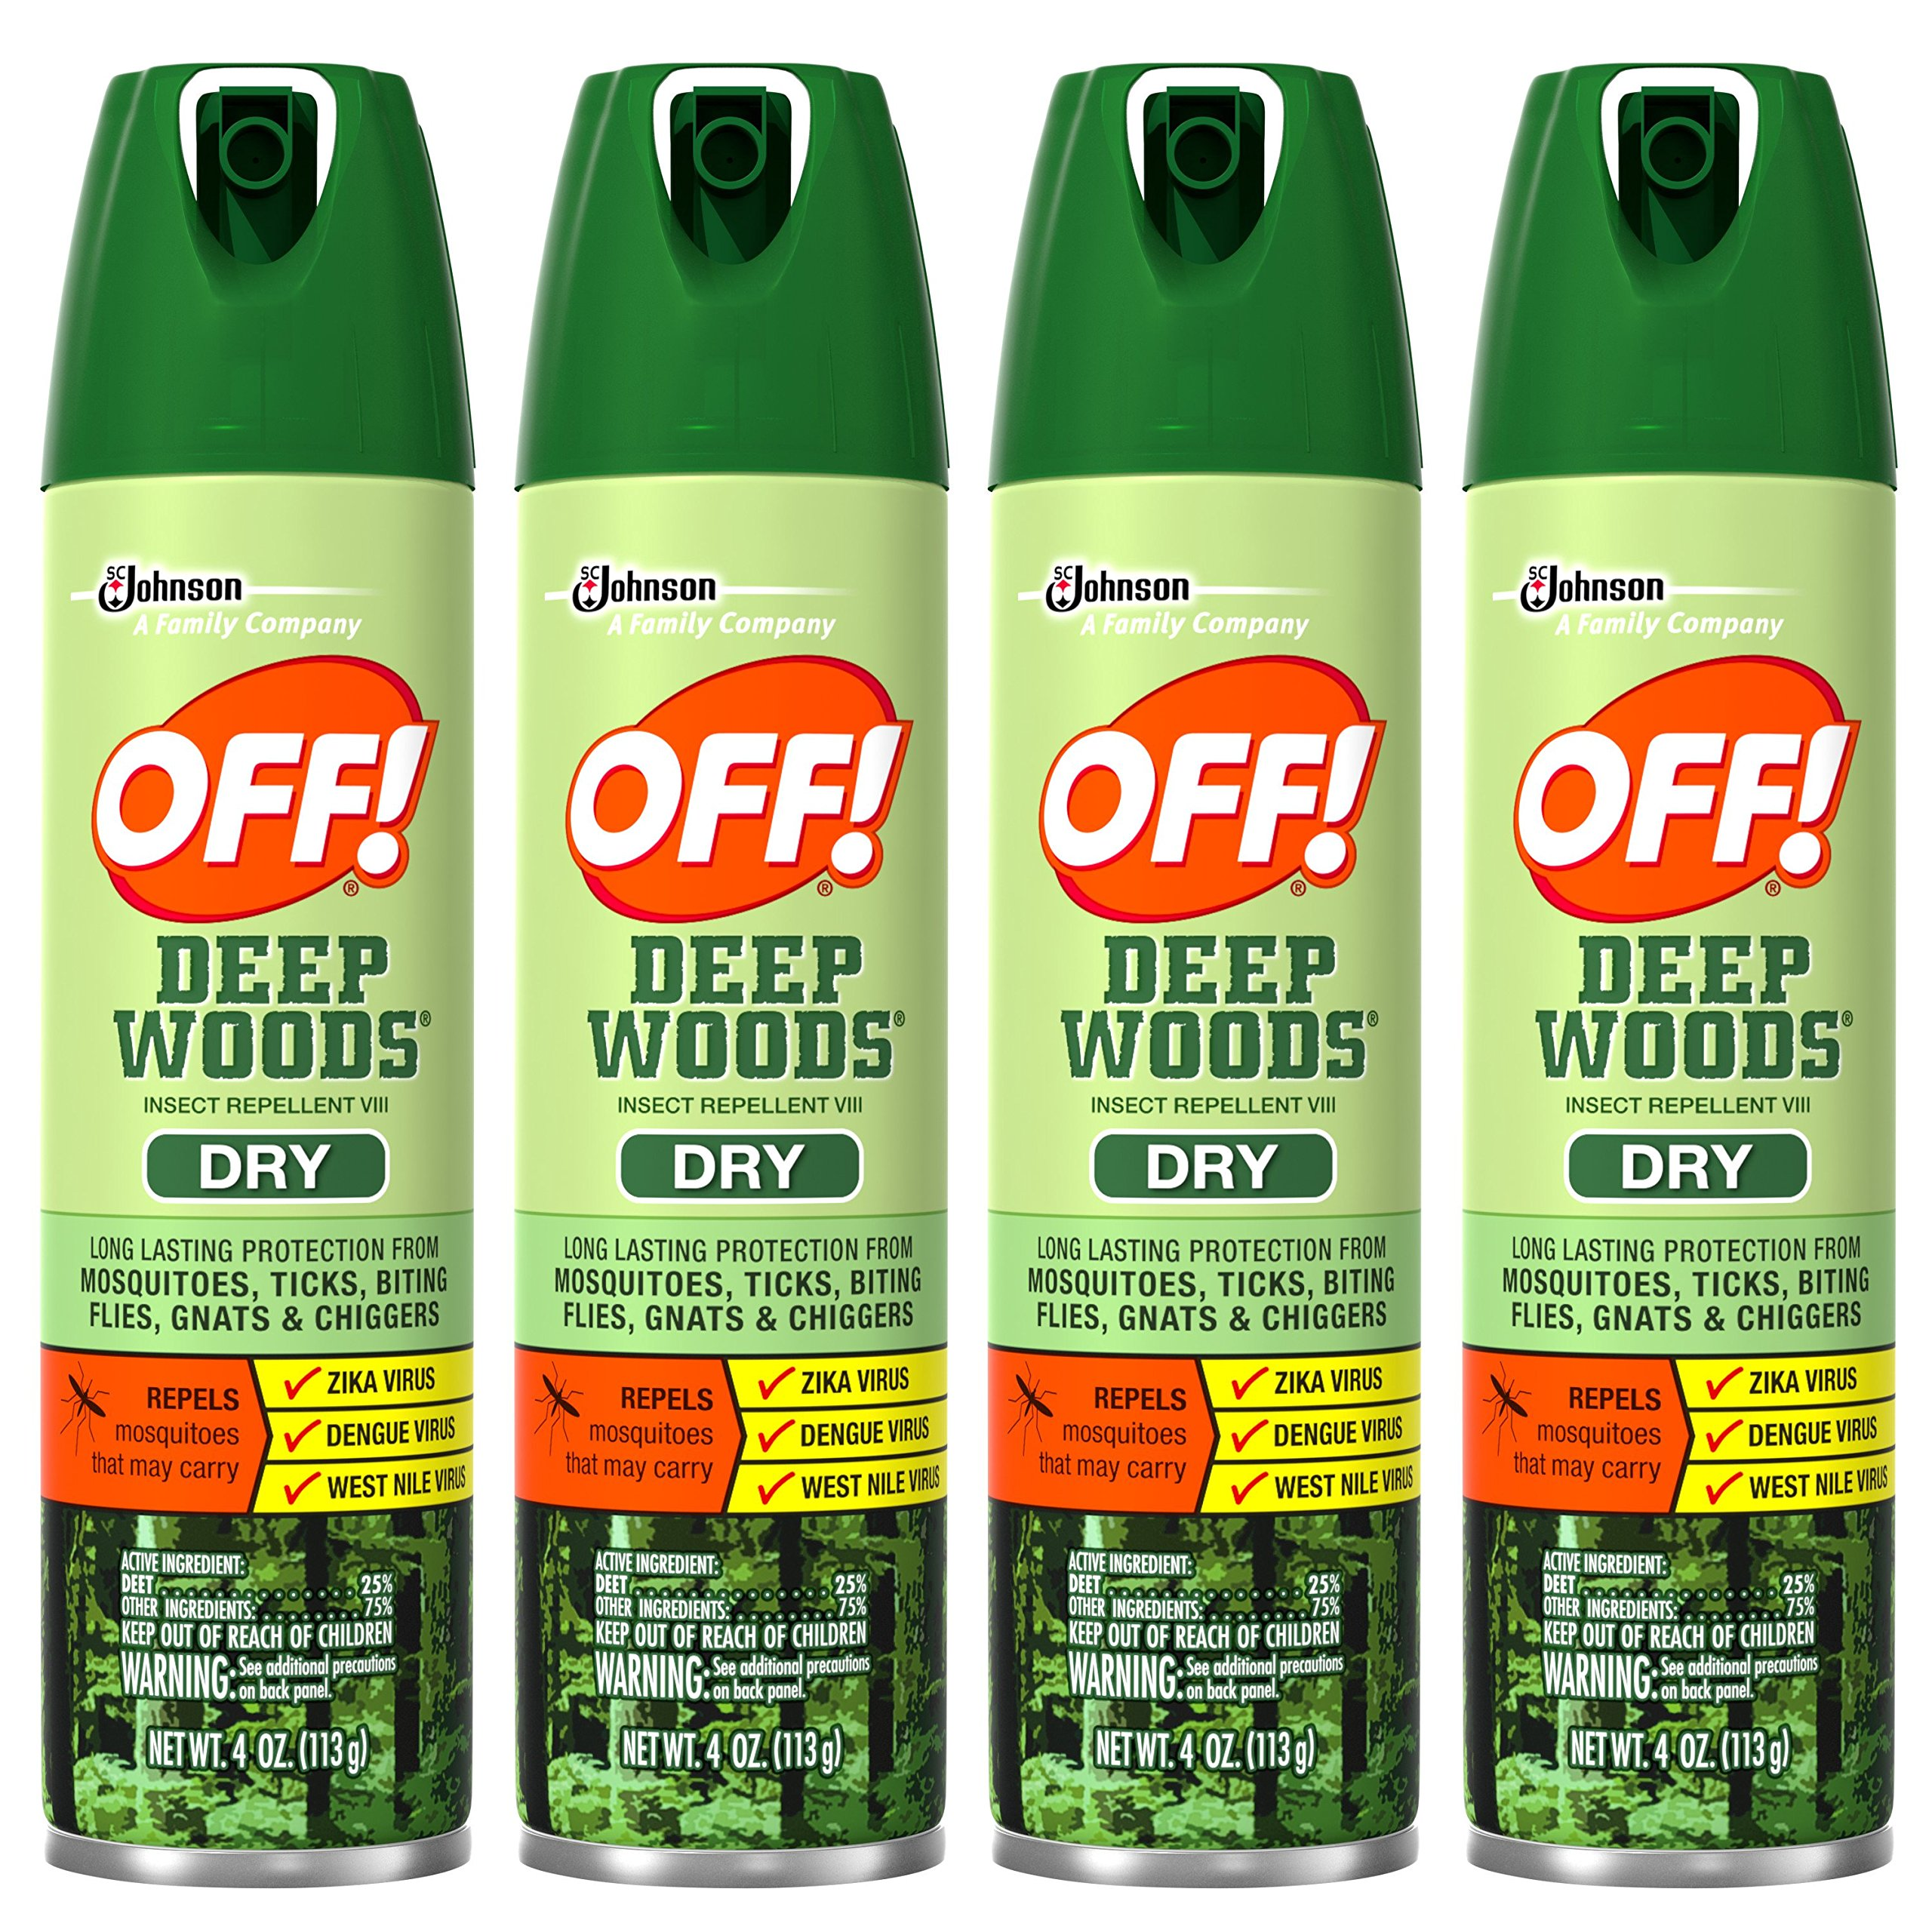 Off! Deep Woods Insect Repellent VIII Dry, 4 Ounce (Pack of 4)